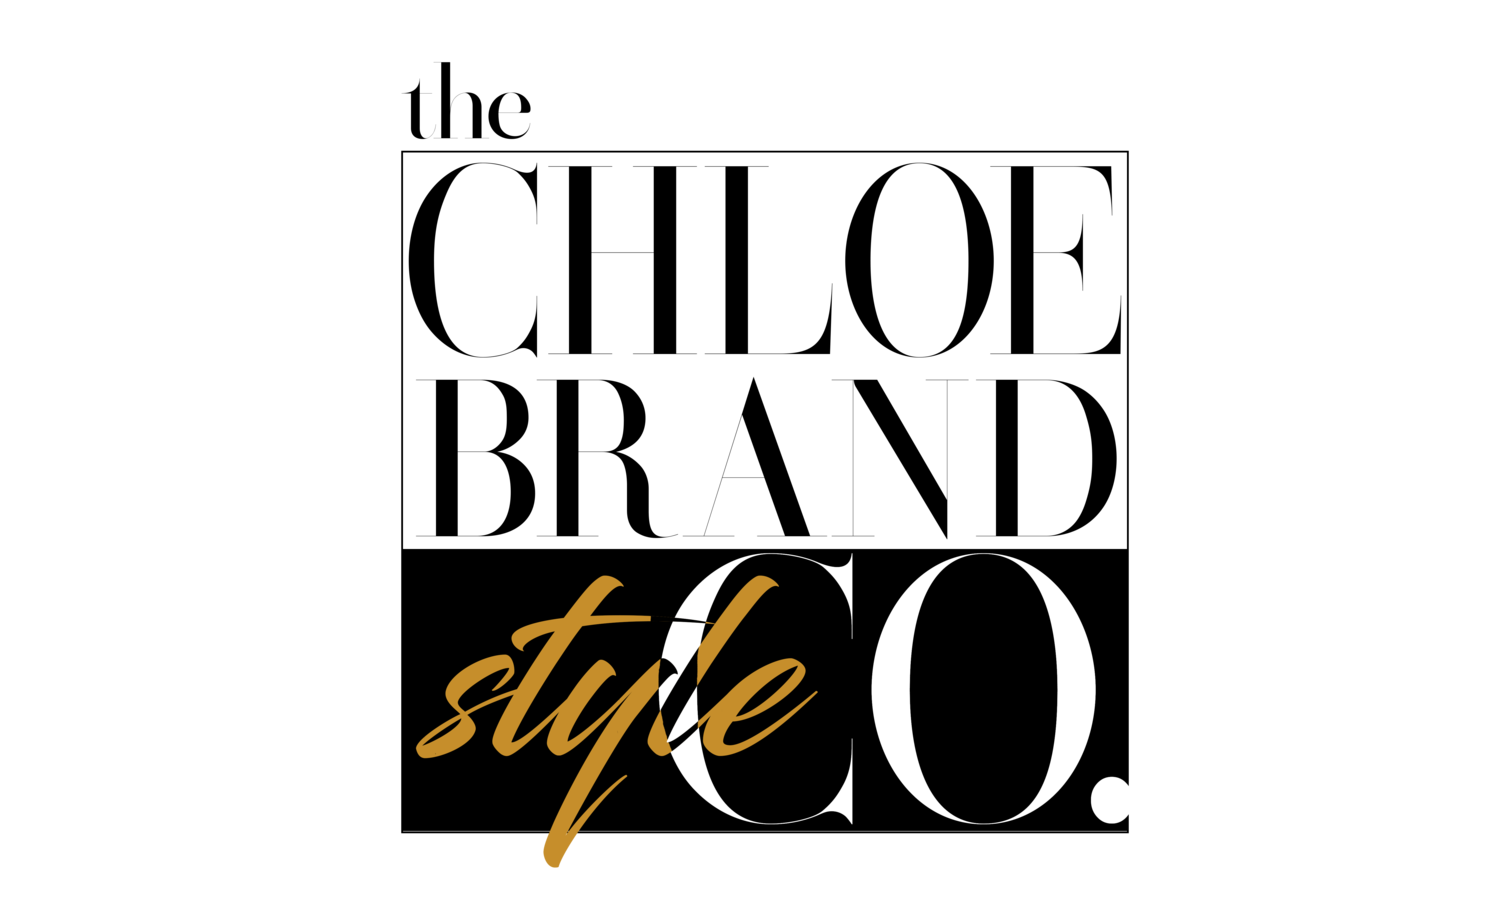 The Chloe Brand Style Co.